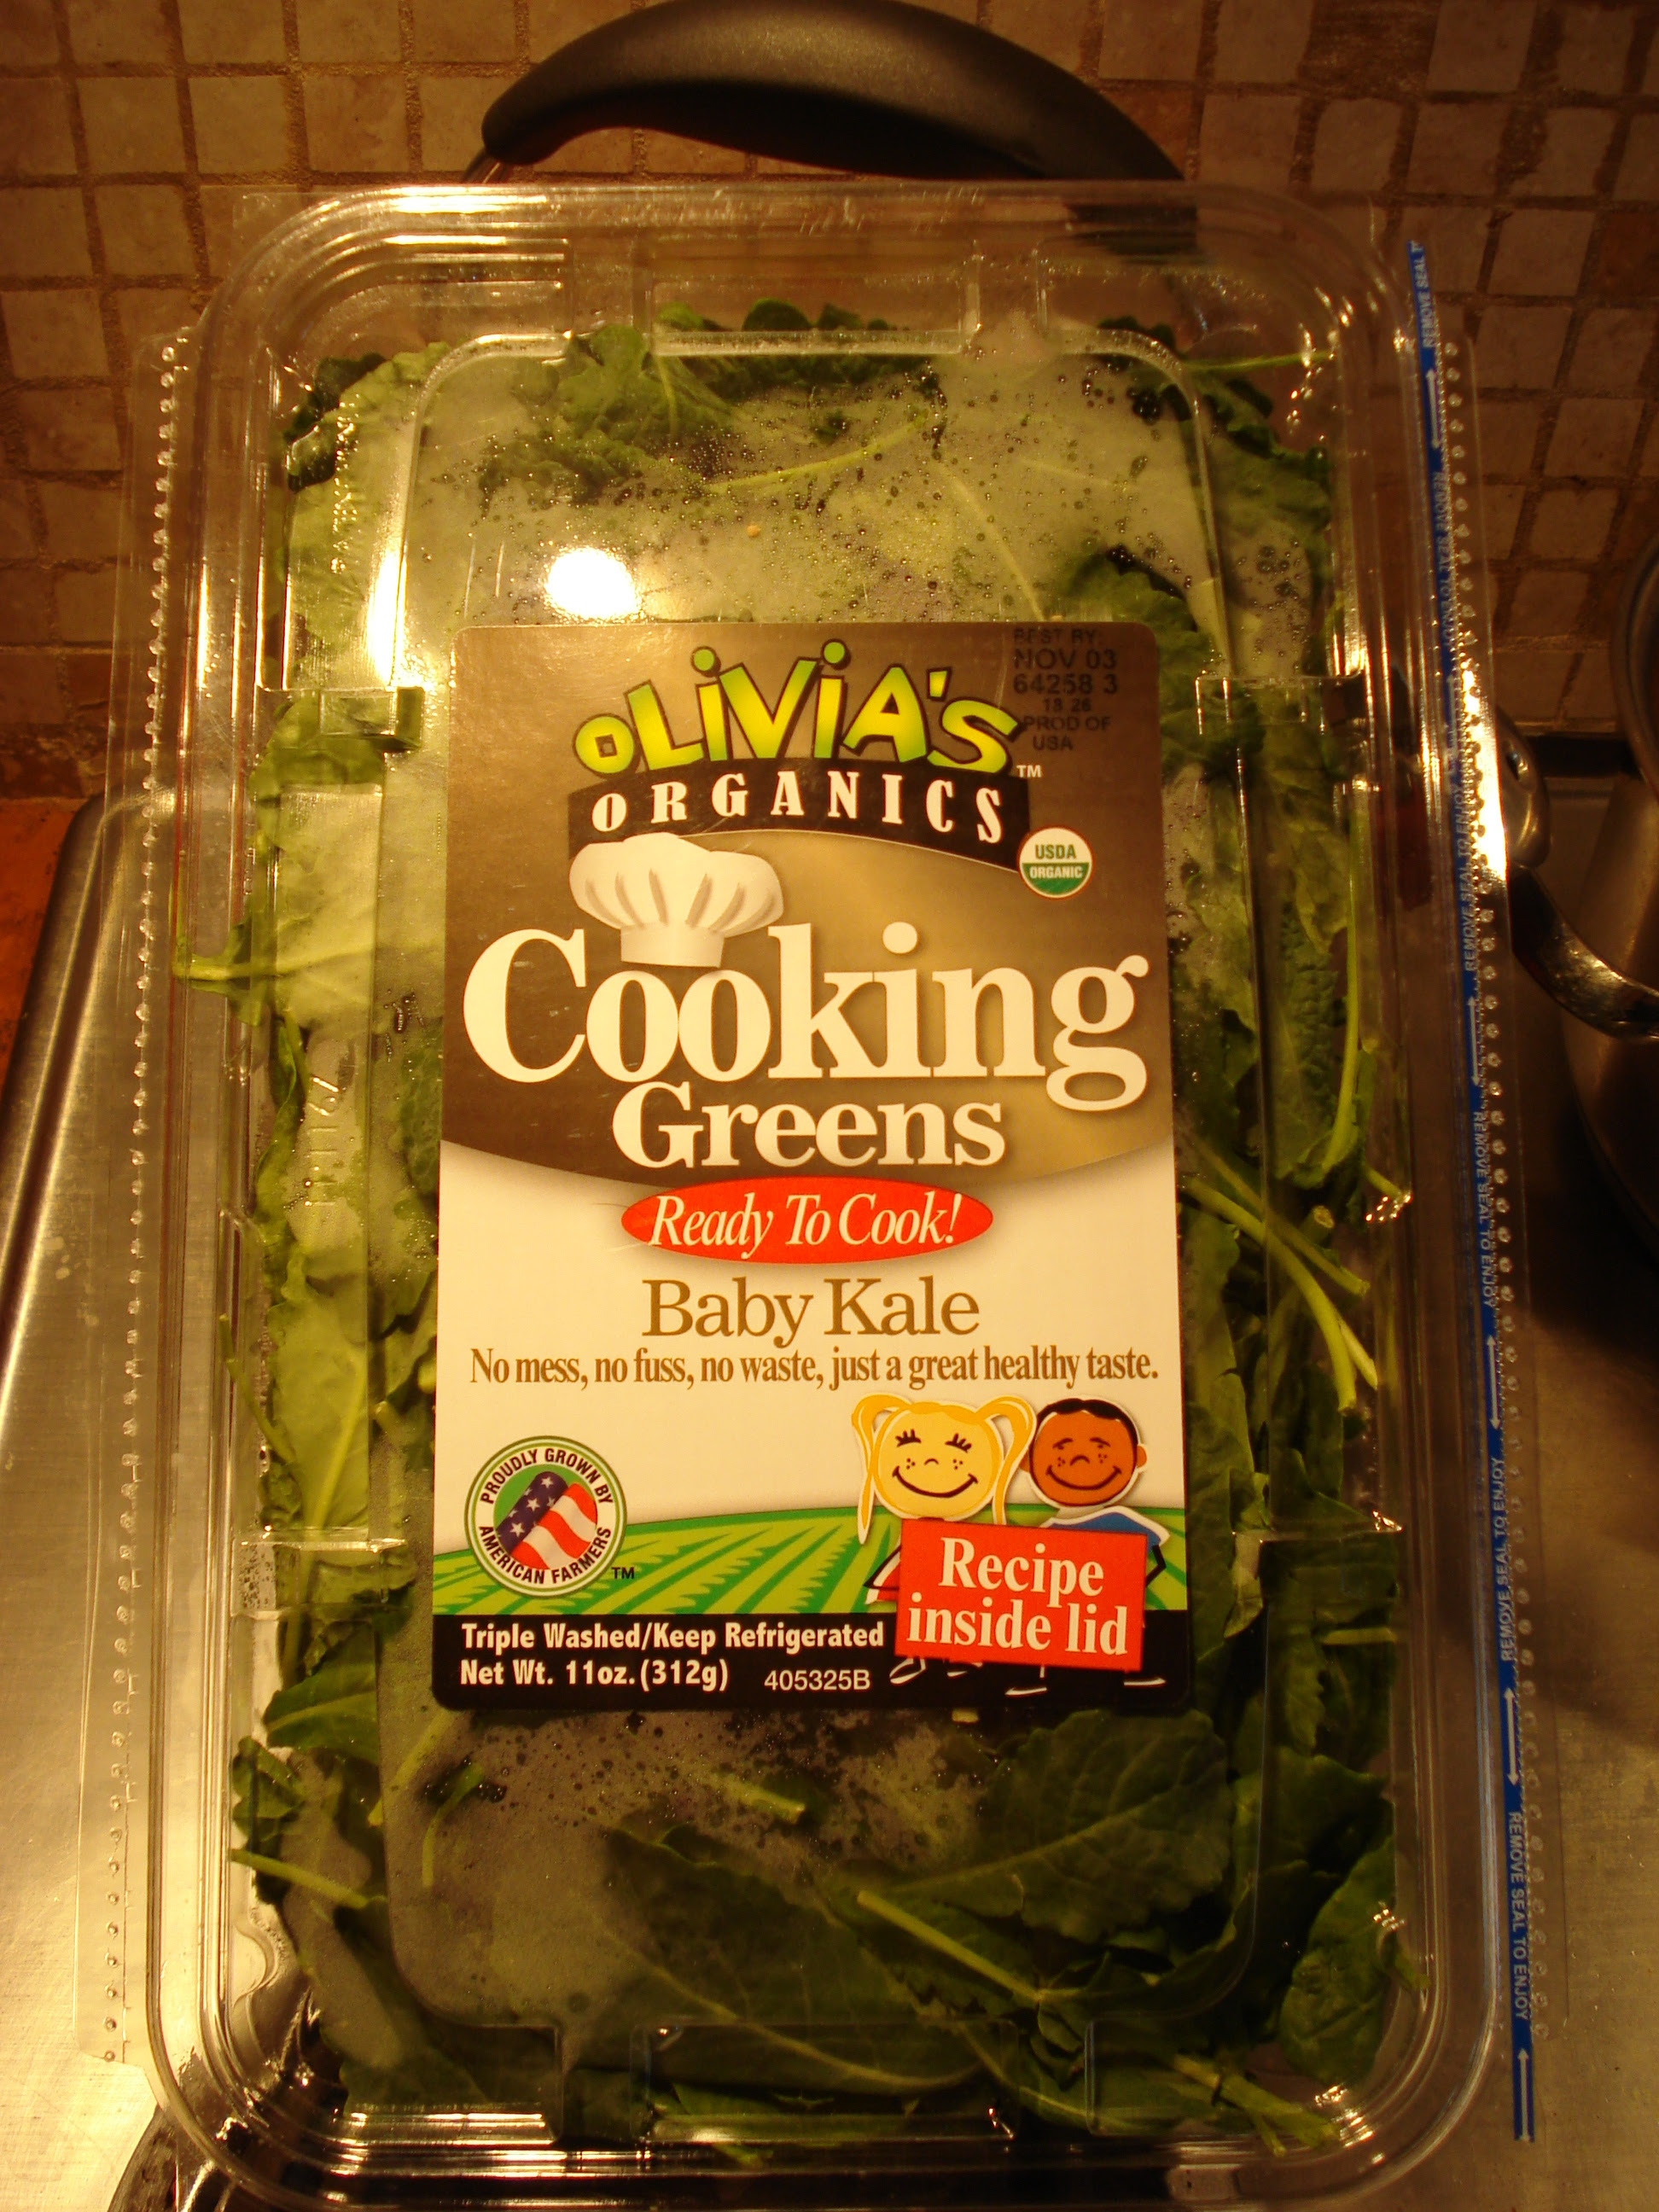 Box of Kale USE